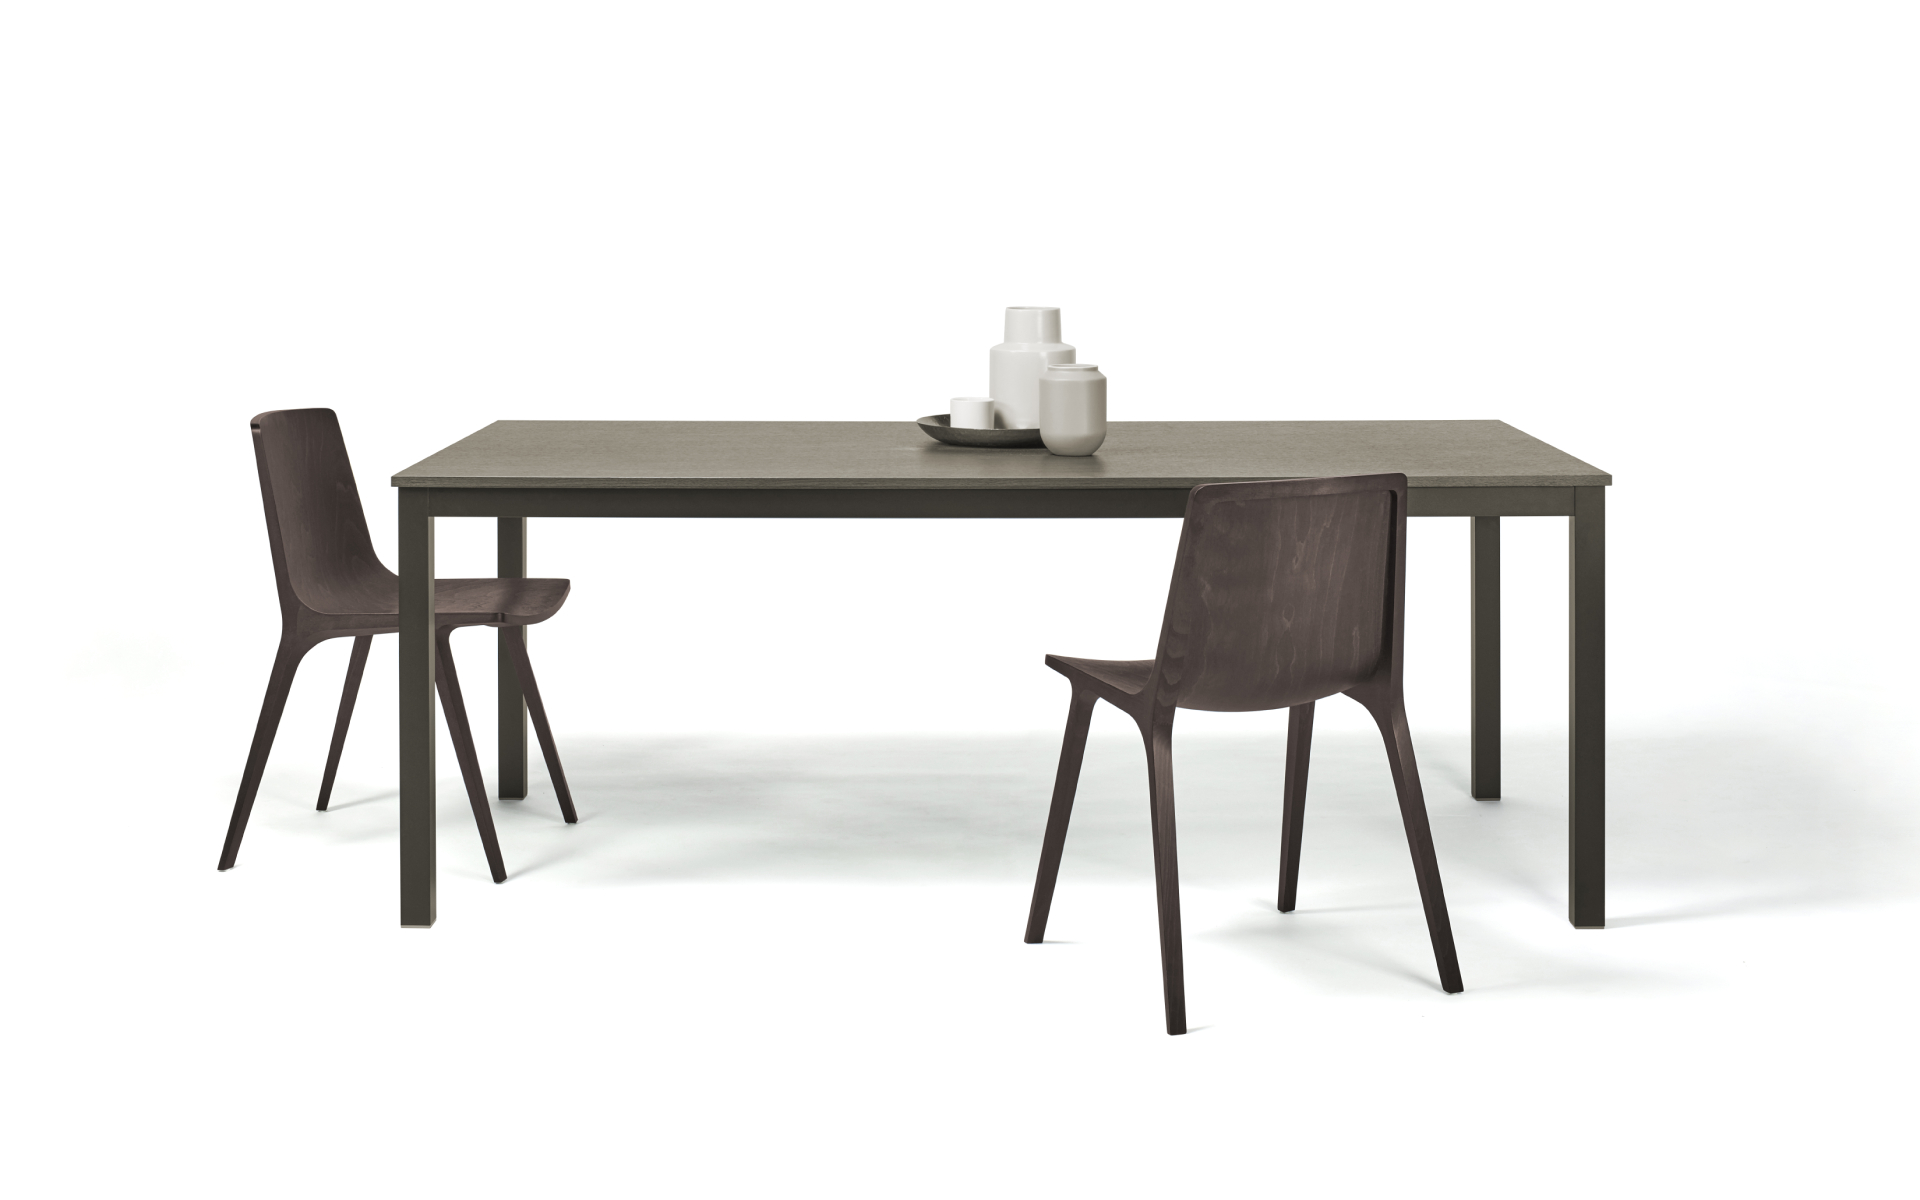 JS02 dining table